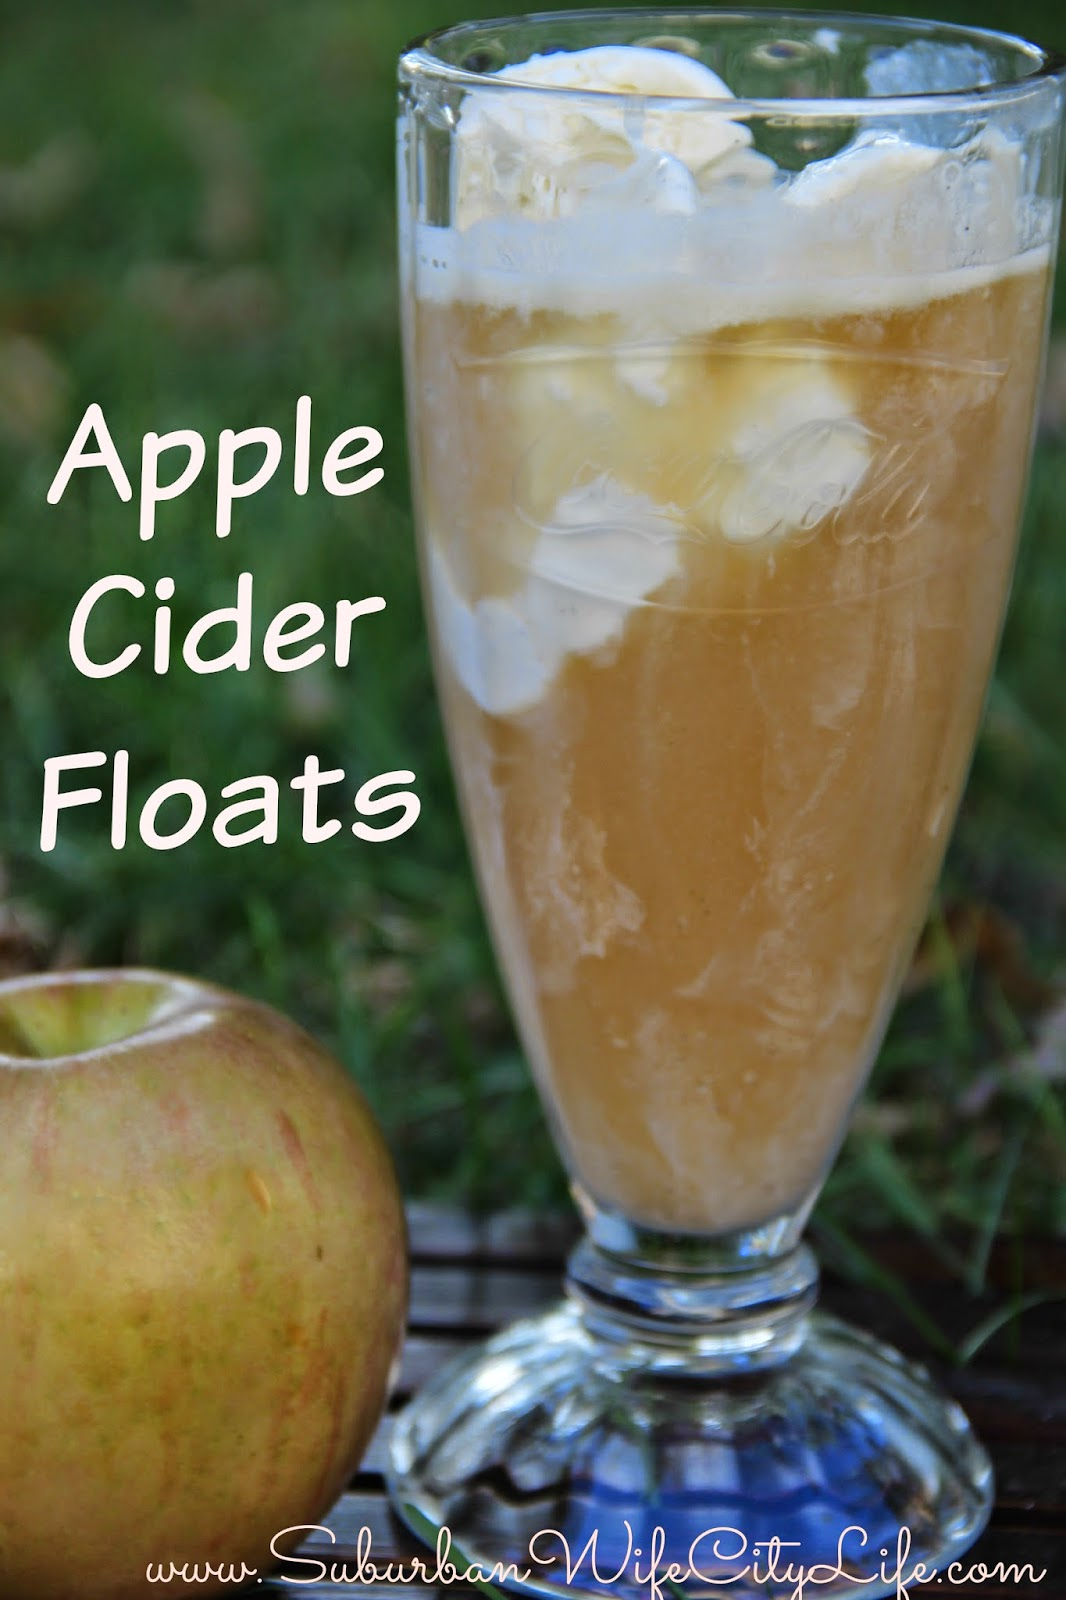 Apple Cider Floats - Suburban Wife, City Life